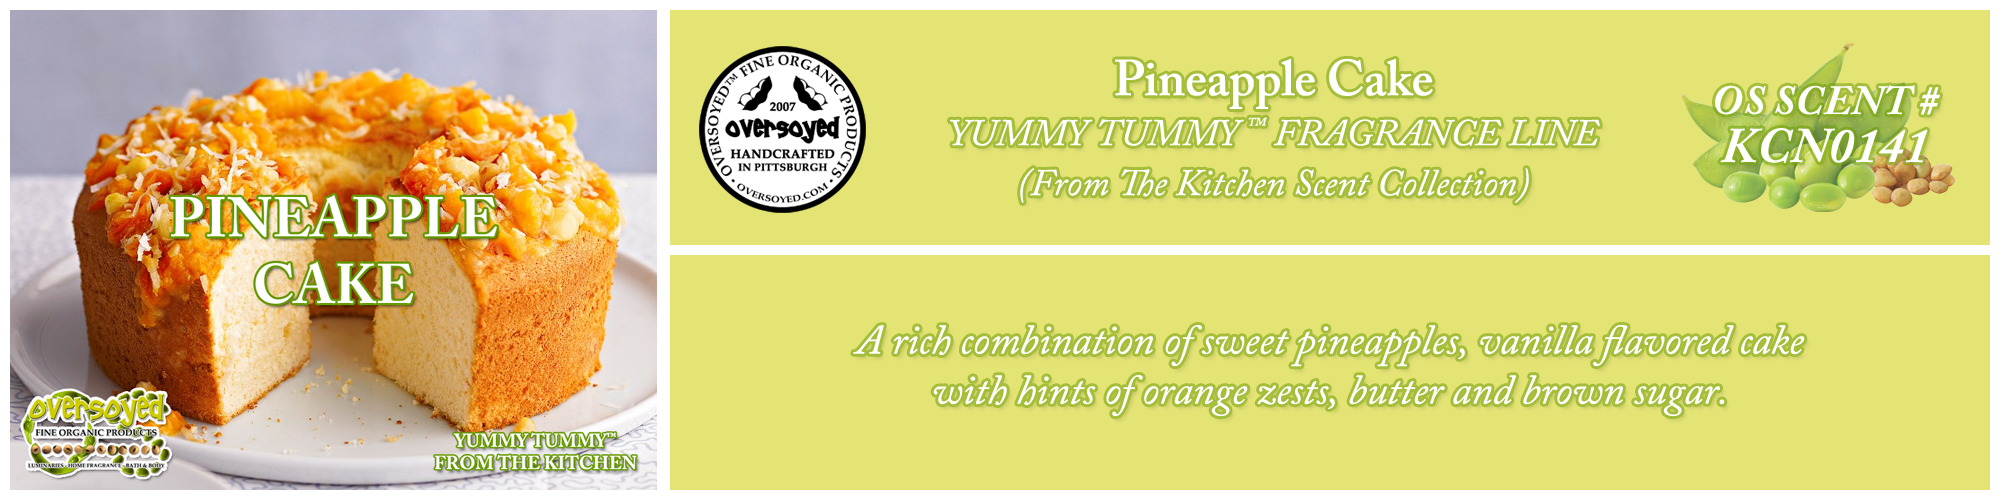 Pineapple Cake Handcrafted Products Collection